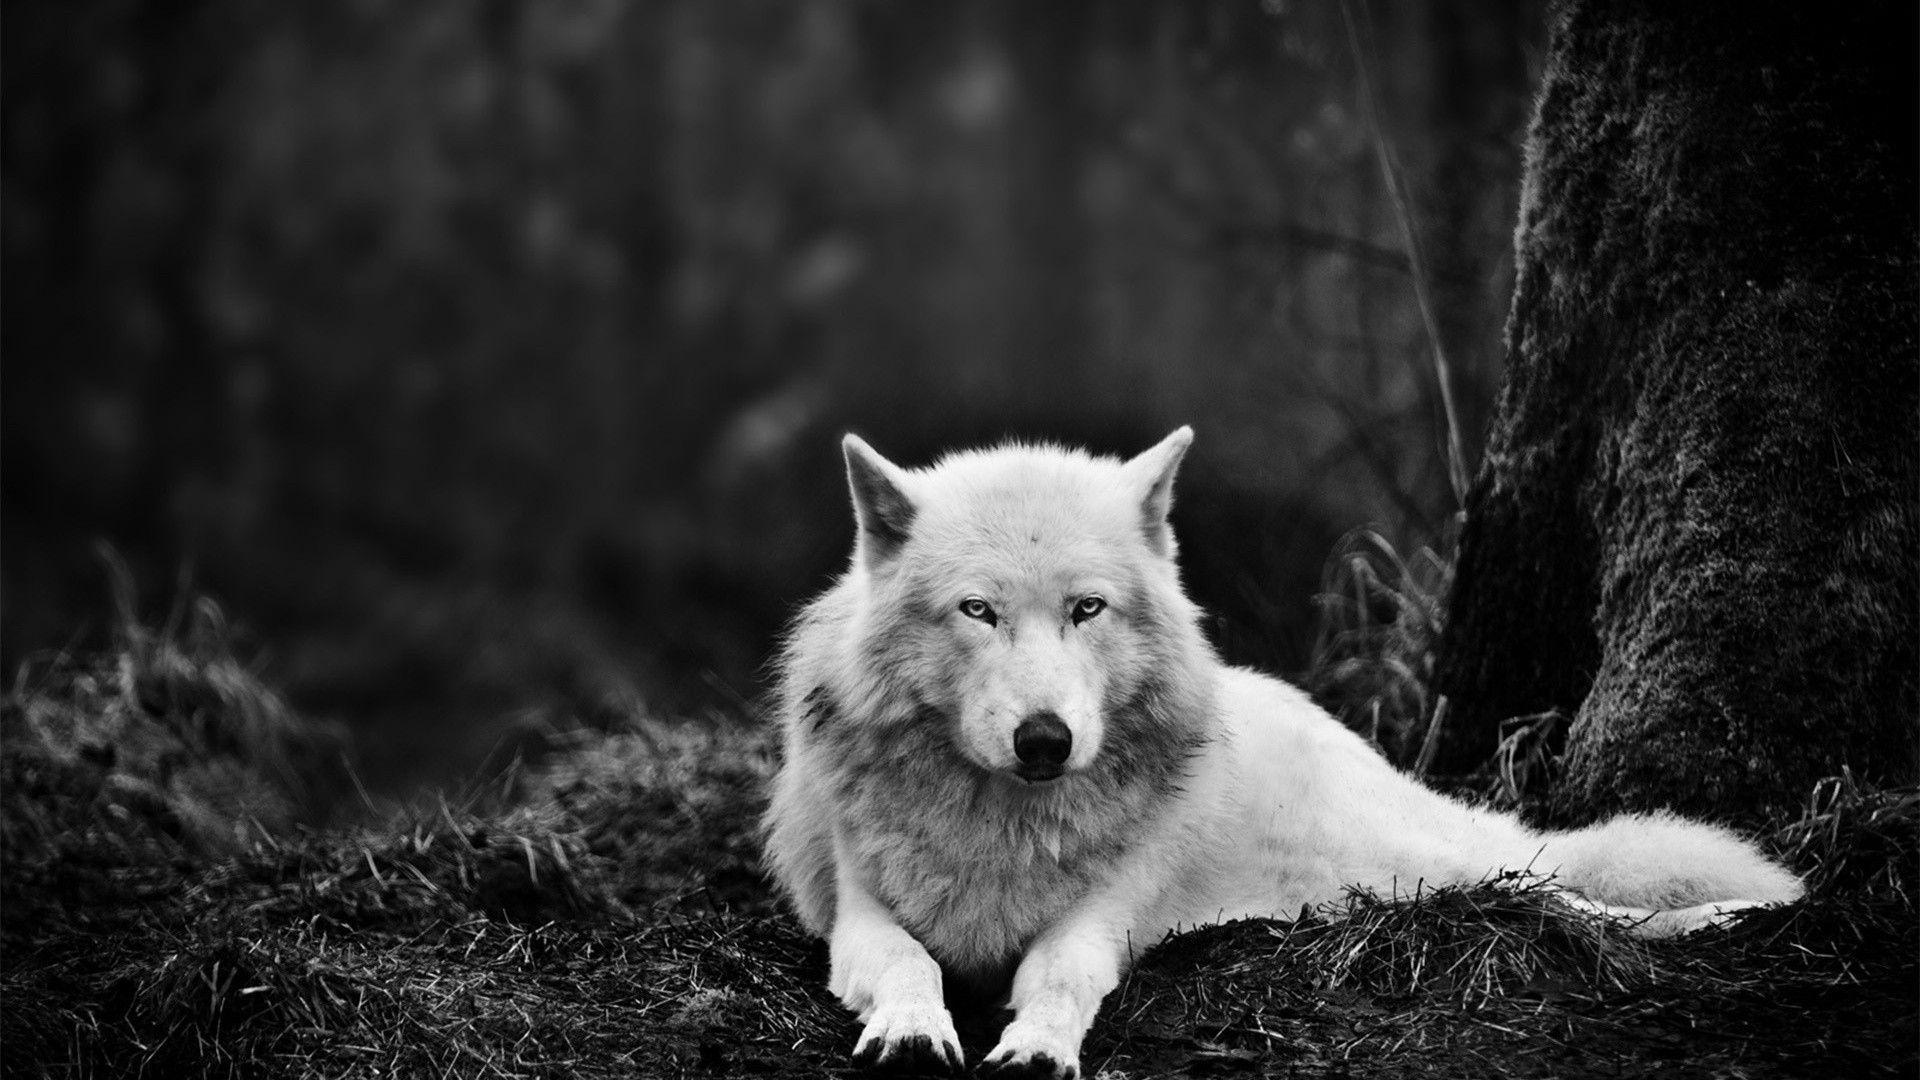 Pin 1920x1080 White Wolf In The Wild Desktop Pc And Mac Wallpaper ...